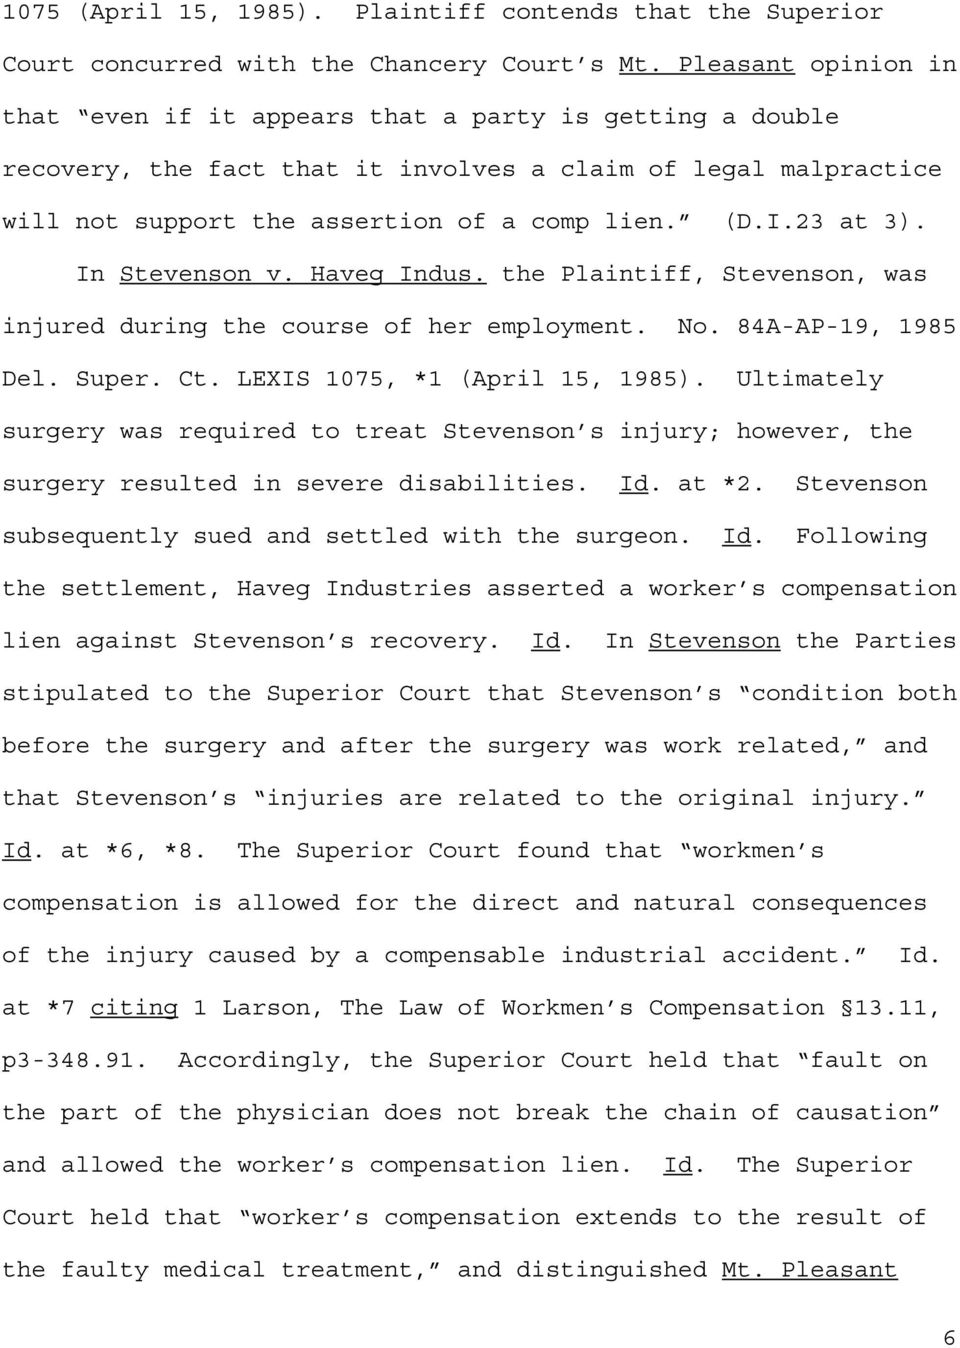 23 at 3). In Stevenson v. Haveg Indus. the Plaintiff, Stevenson, was injured during the course of her employment. No. 84A-AP-19, 1985 Del. Super. Ct. LEXIS 1075, *1 (April 15, 1985).